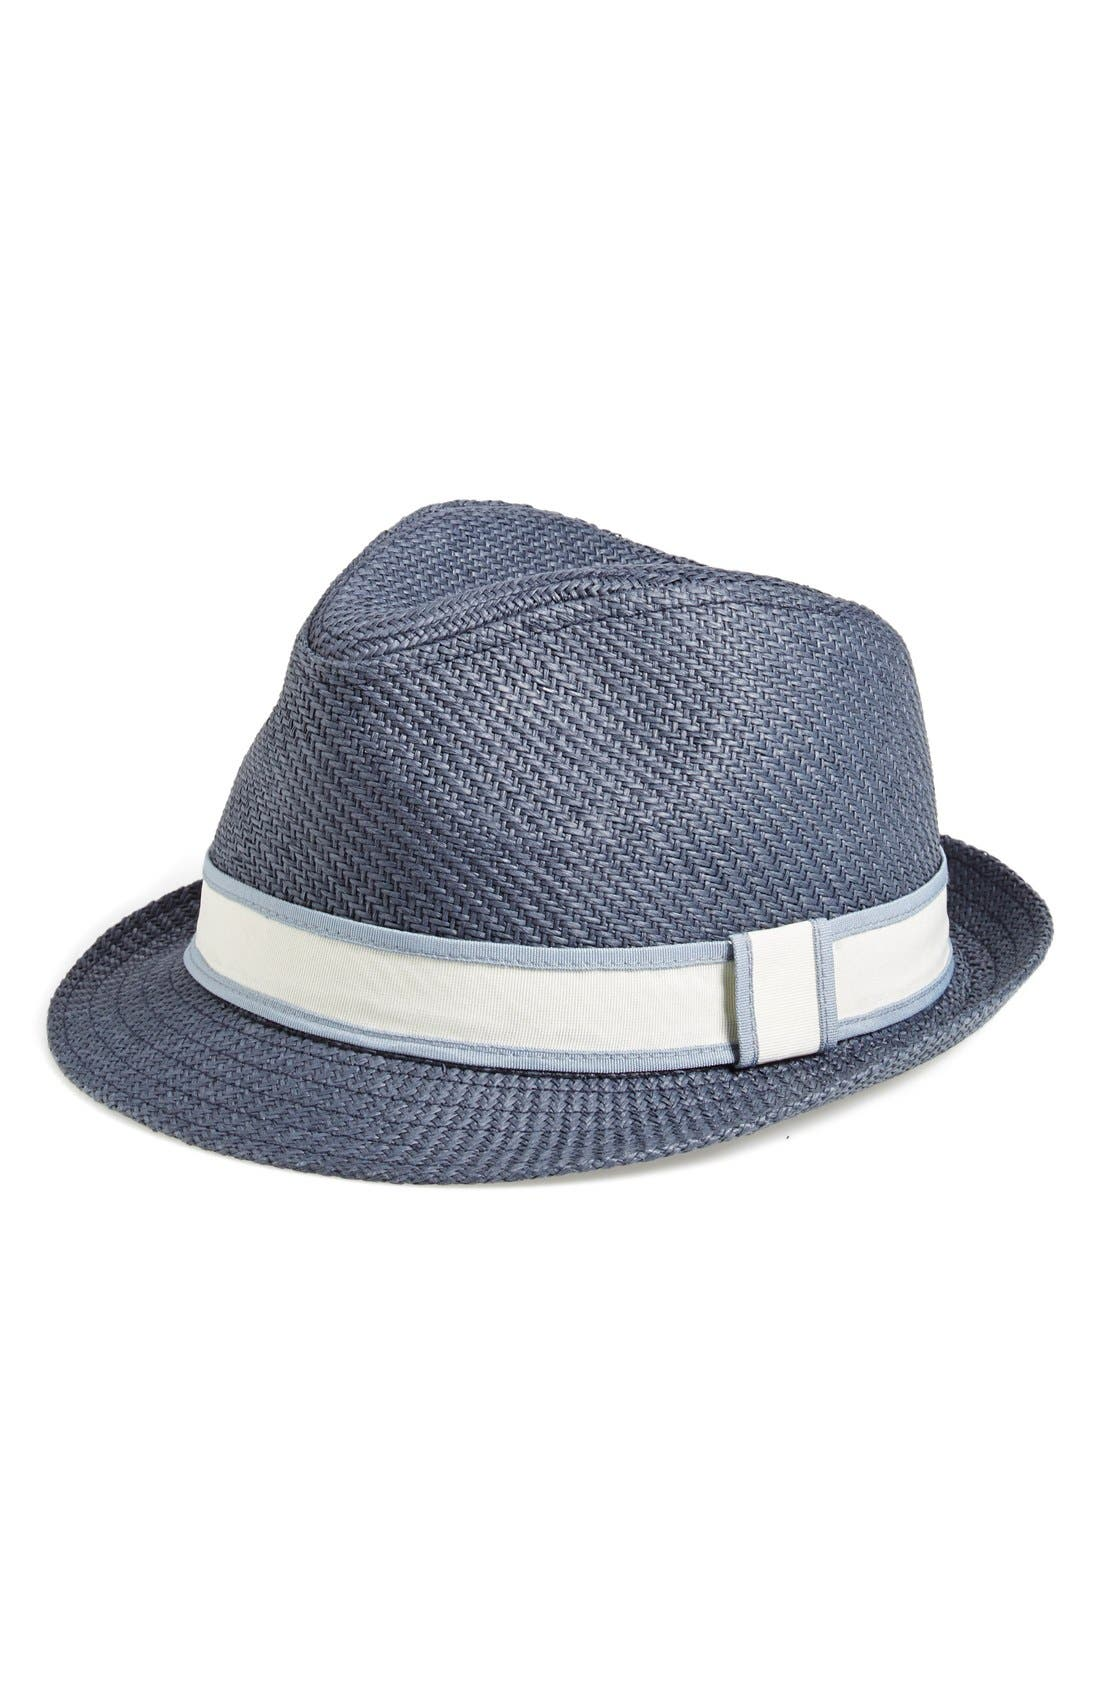 Goorin Killian Fedora